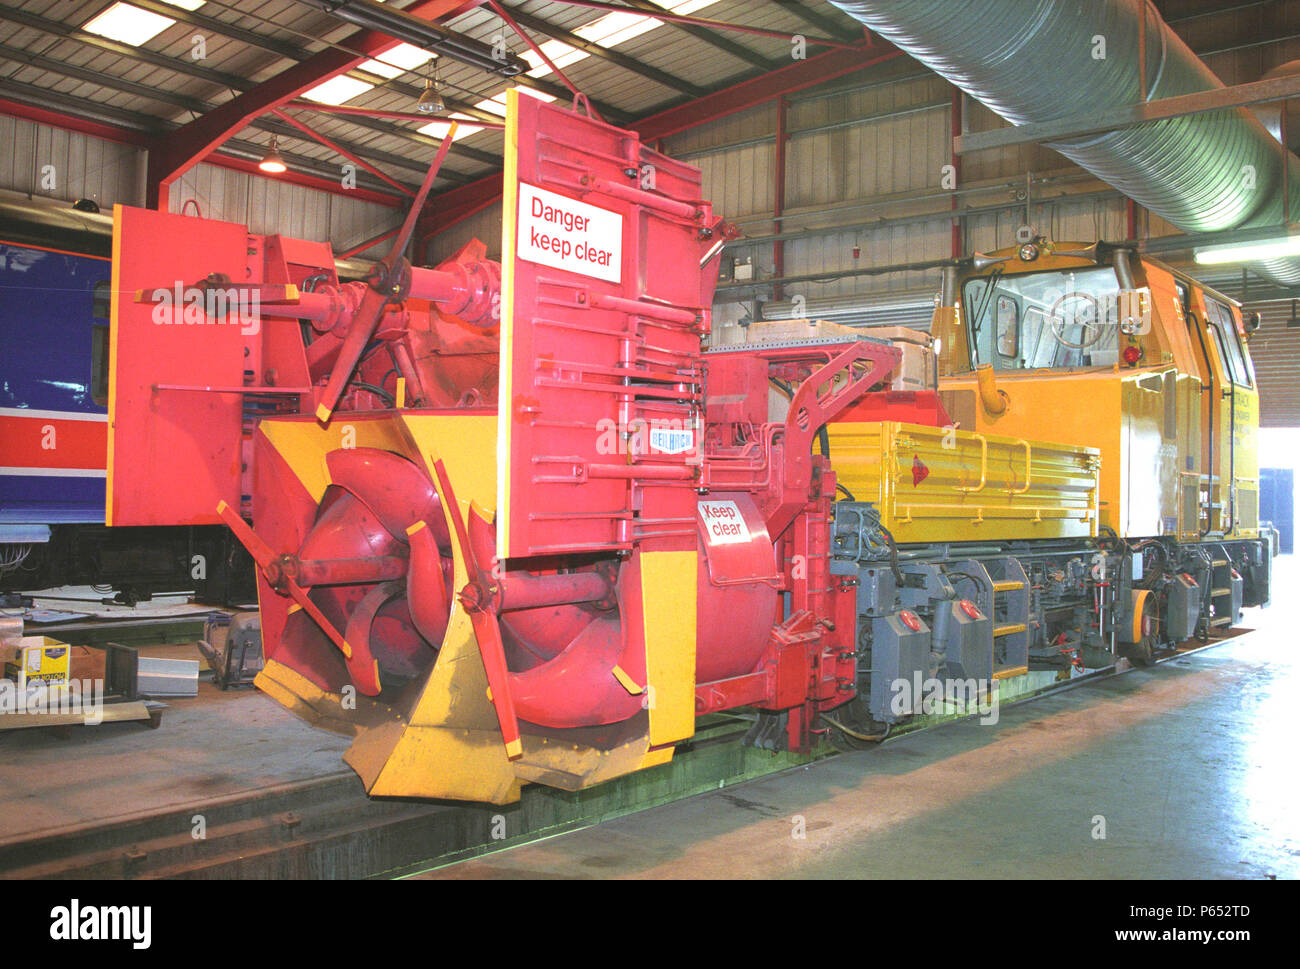 Network Rail's snow blower ADB96850 at Hunslet Barclays Works Kilmarnock on Tuesday 15th April 2003. - Stock Image